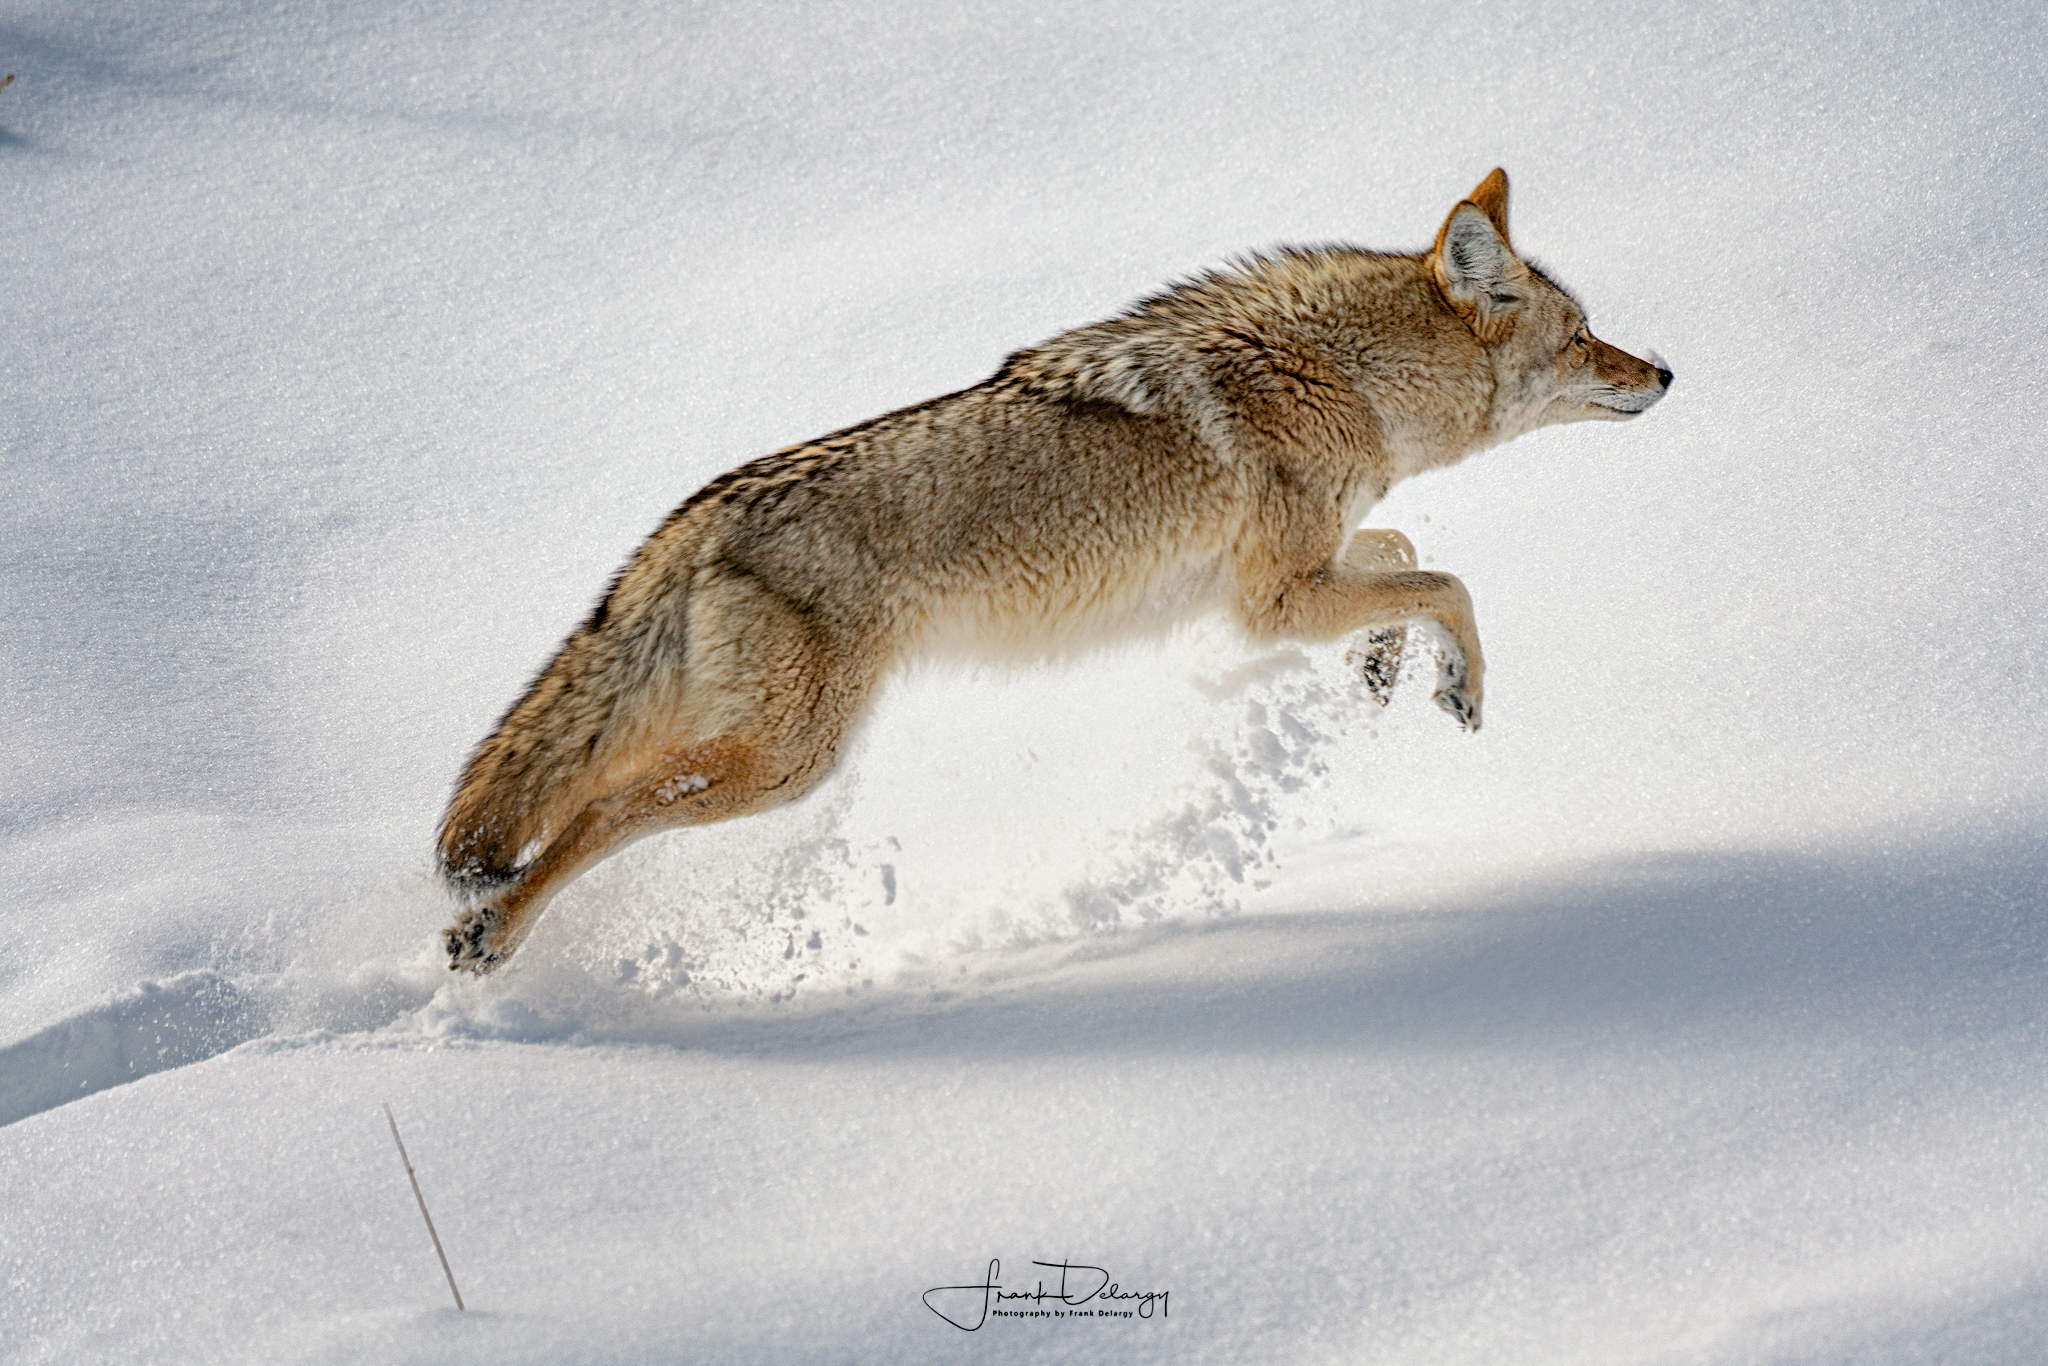 I felt so lucky to capture this guy in mid flight, bounding out of a couple of feet of snow.